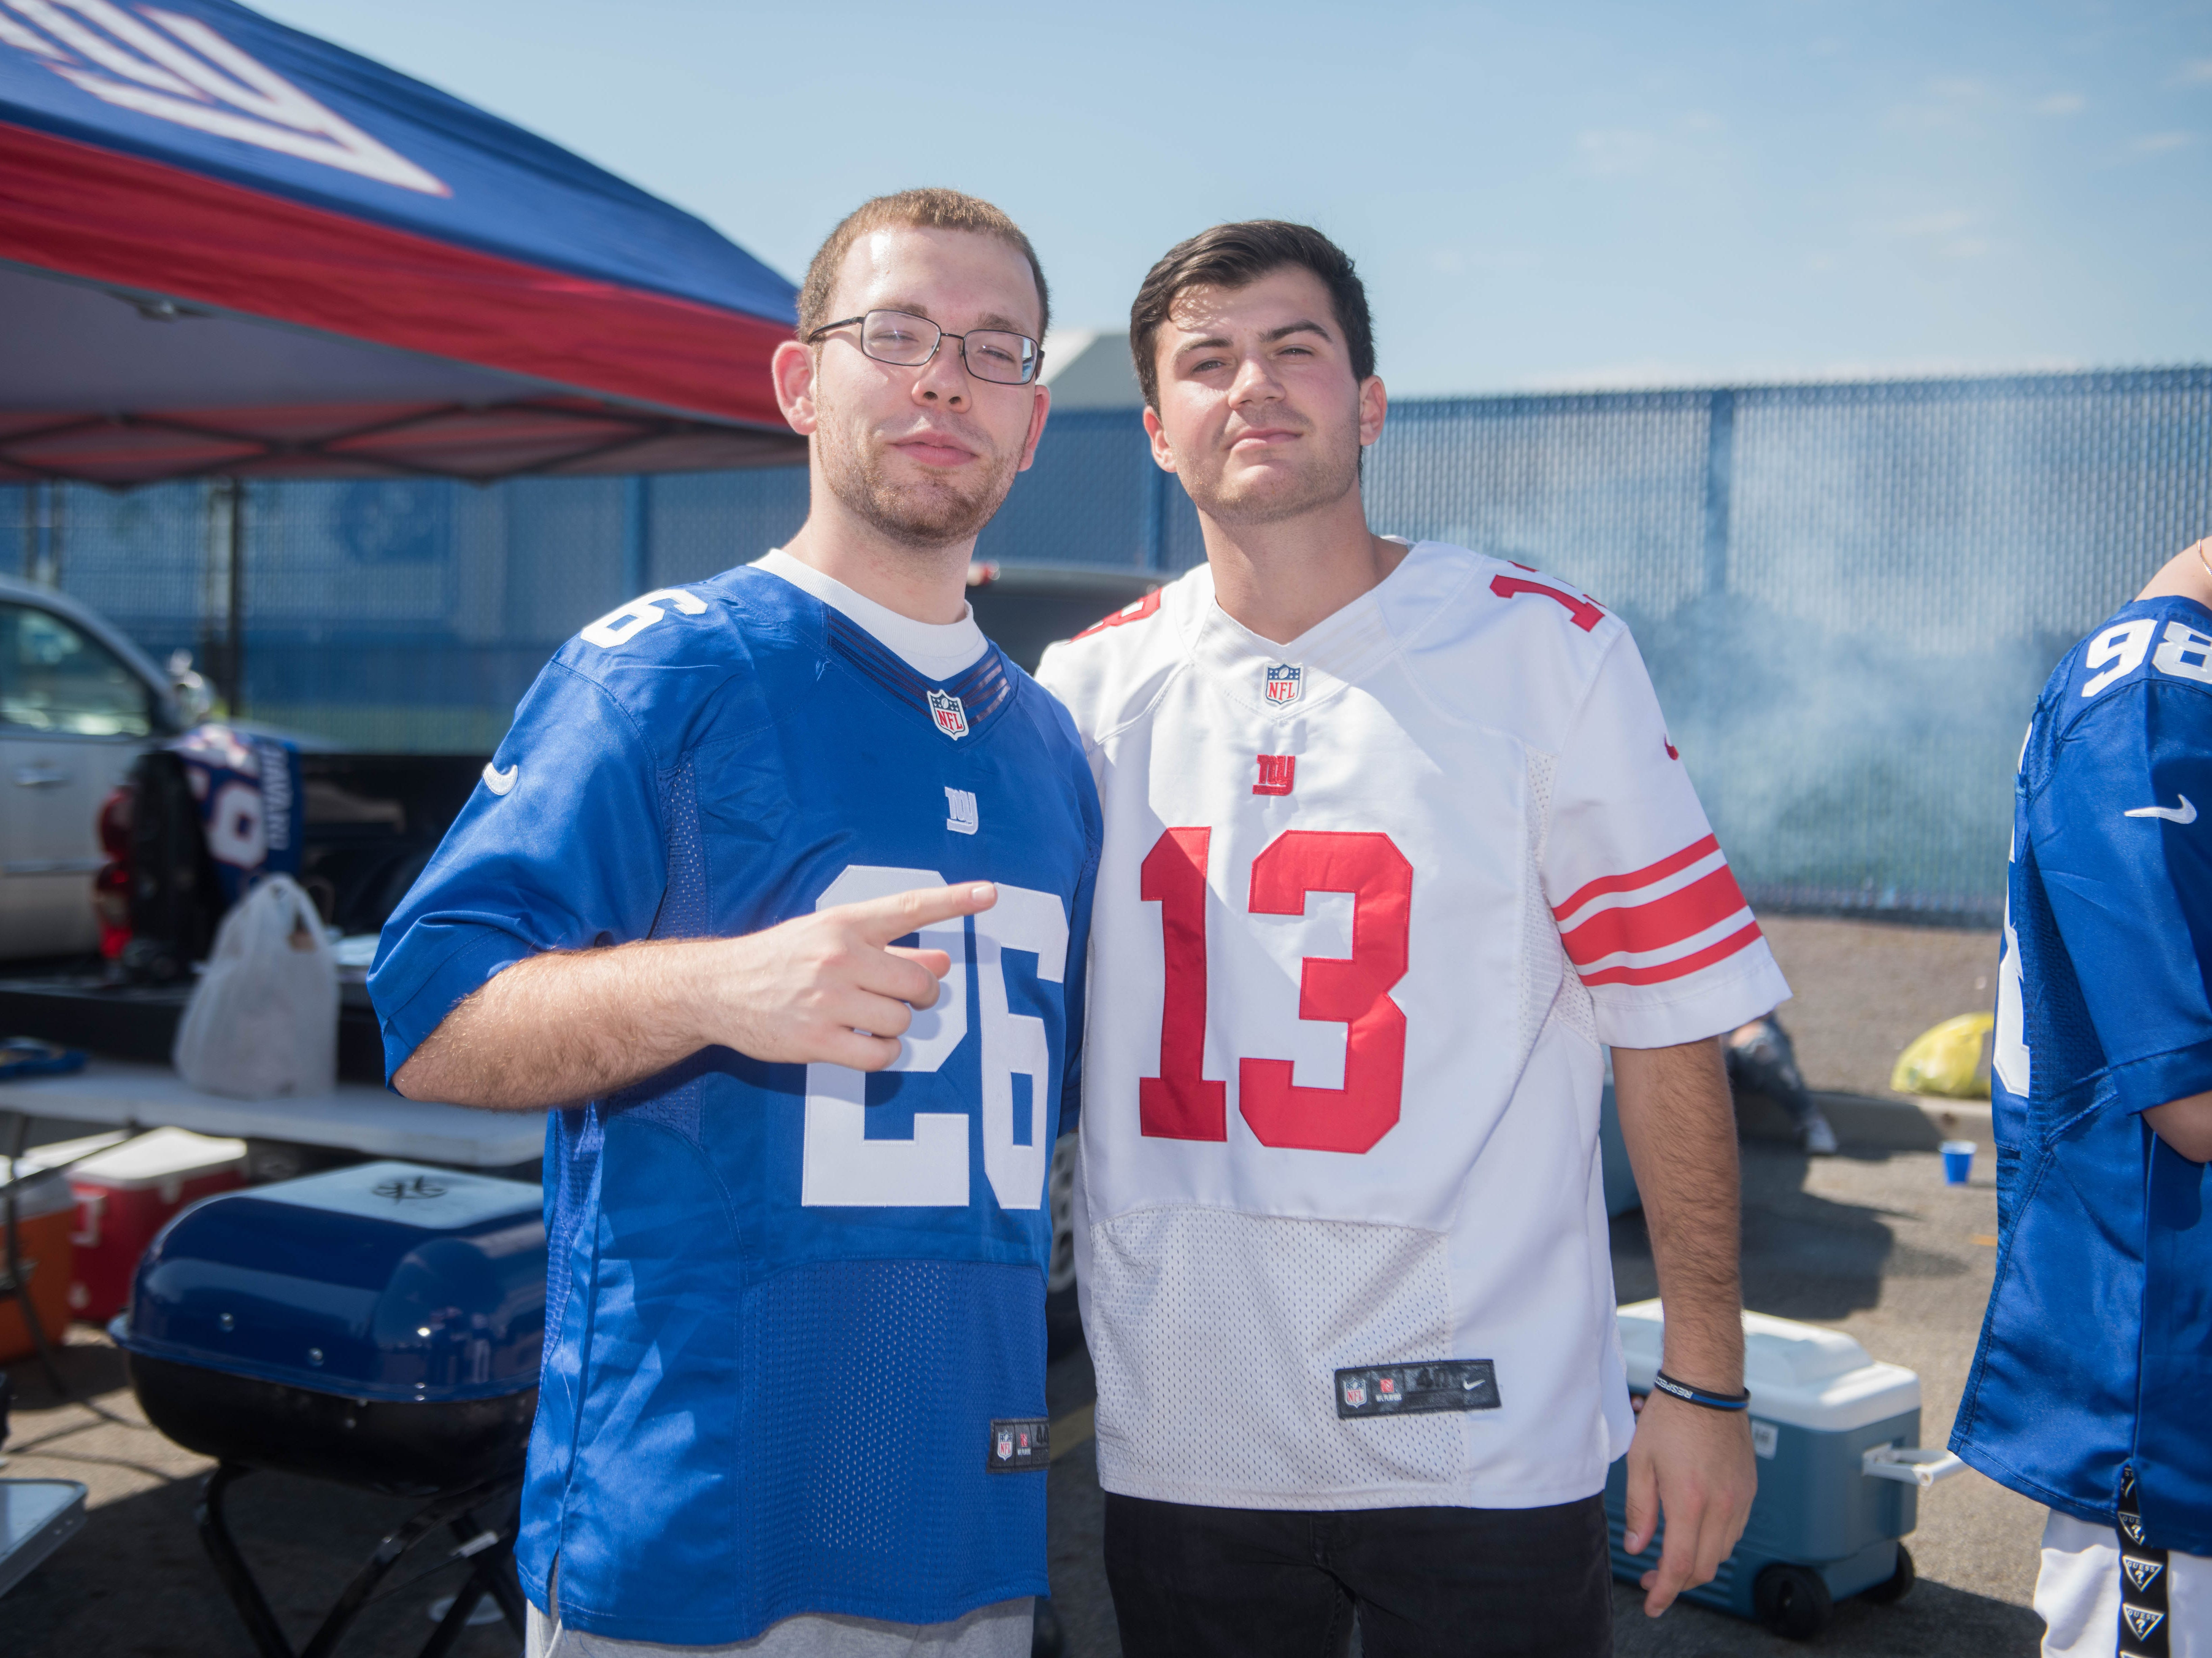 Giants fans at the tailgate before taking on the Saints, Sunday, Sept. 30, 2018.